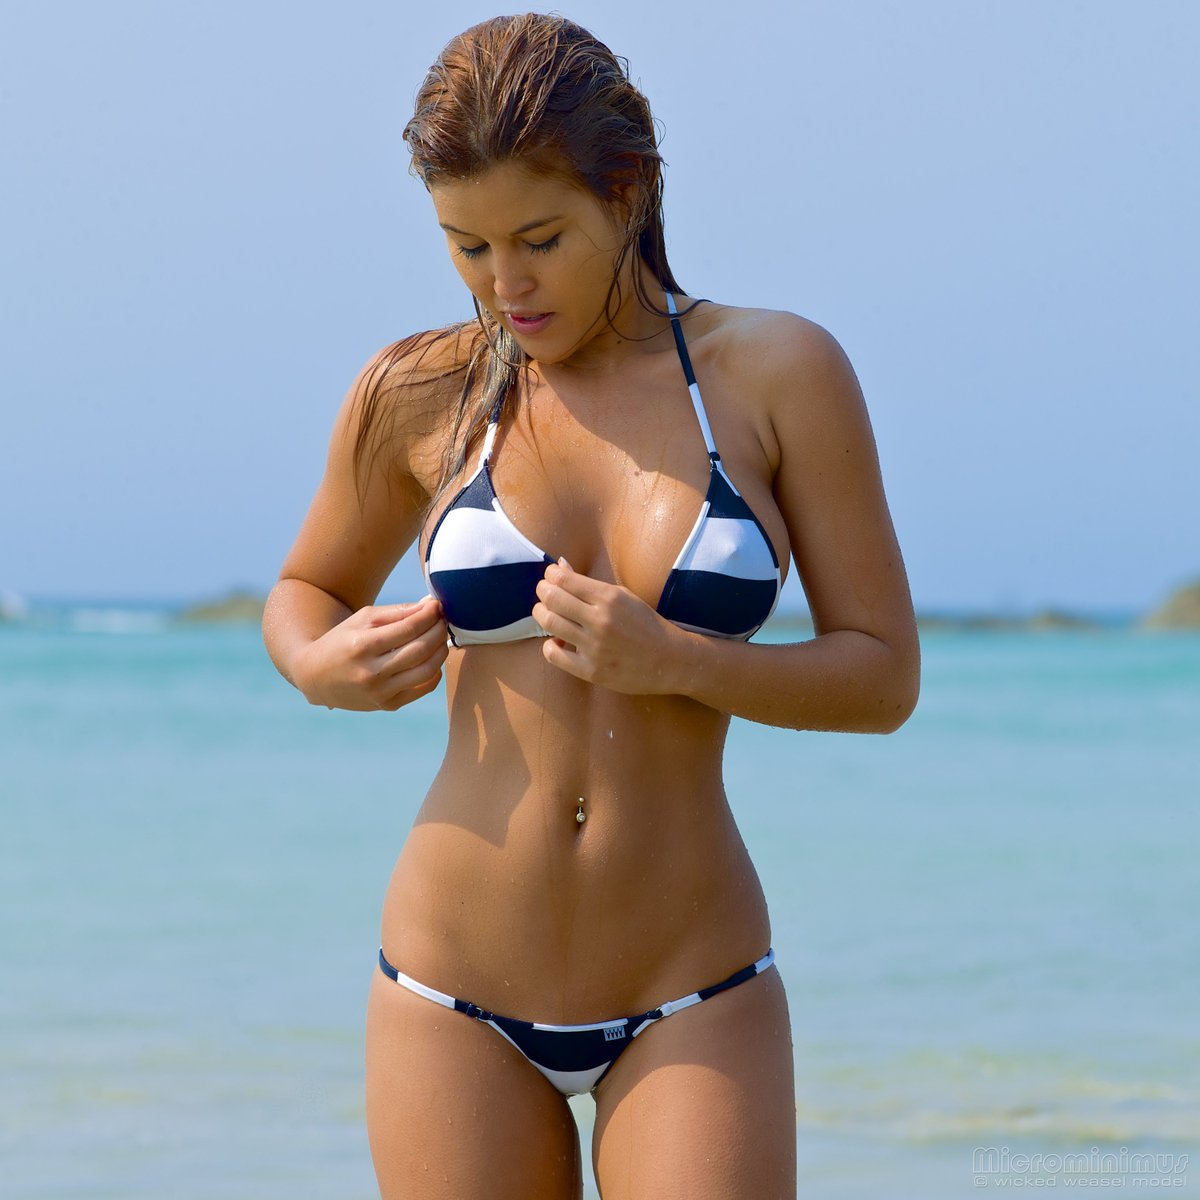 Sites like wicked weasel